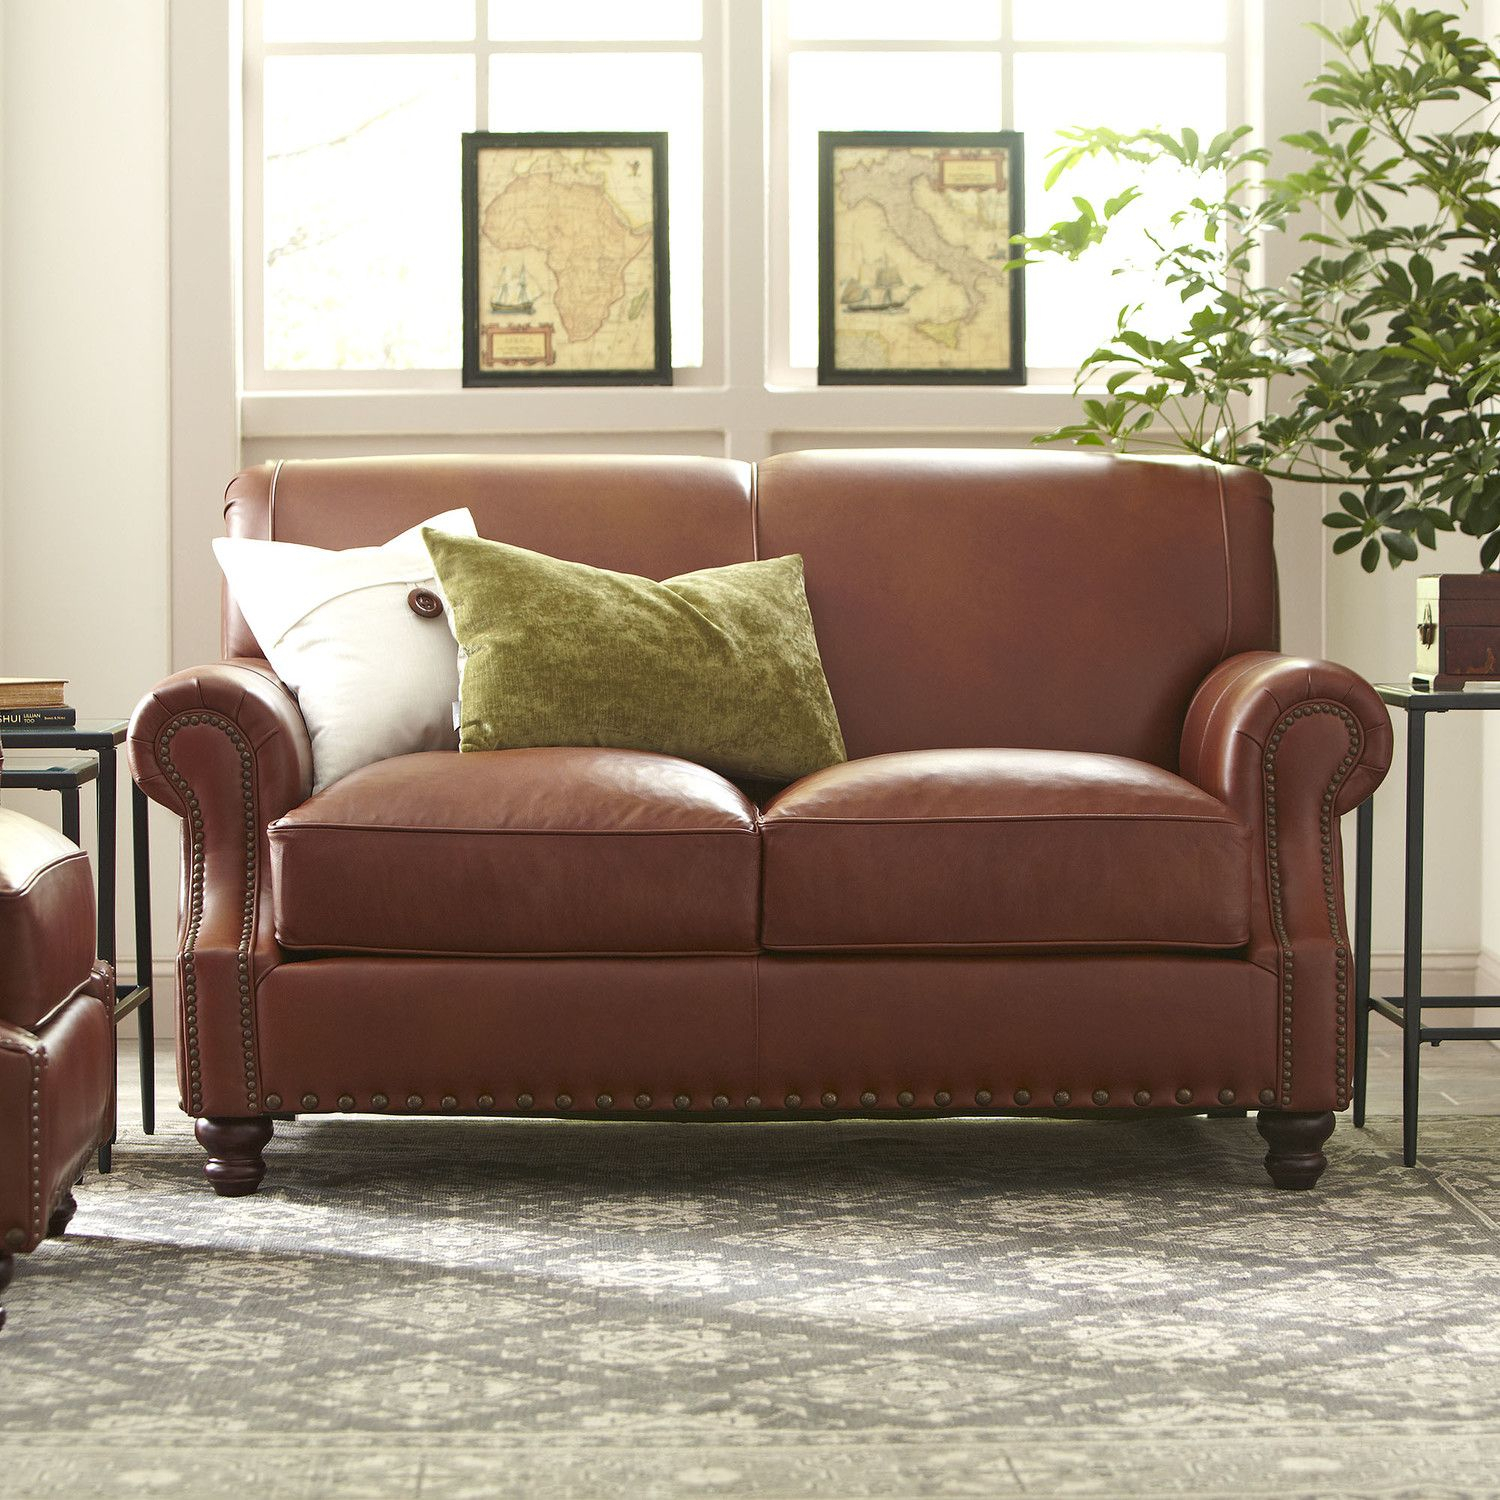 Landry Leather Loveseat |Room | Pinterest | Leather Loveseat Intended For Landry Sofa Chairs (View 19 of 25)